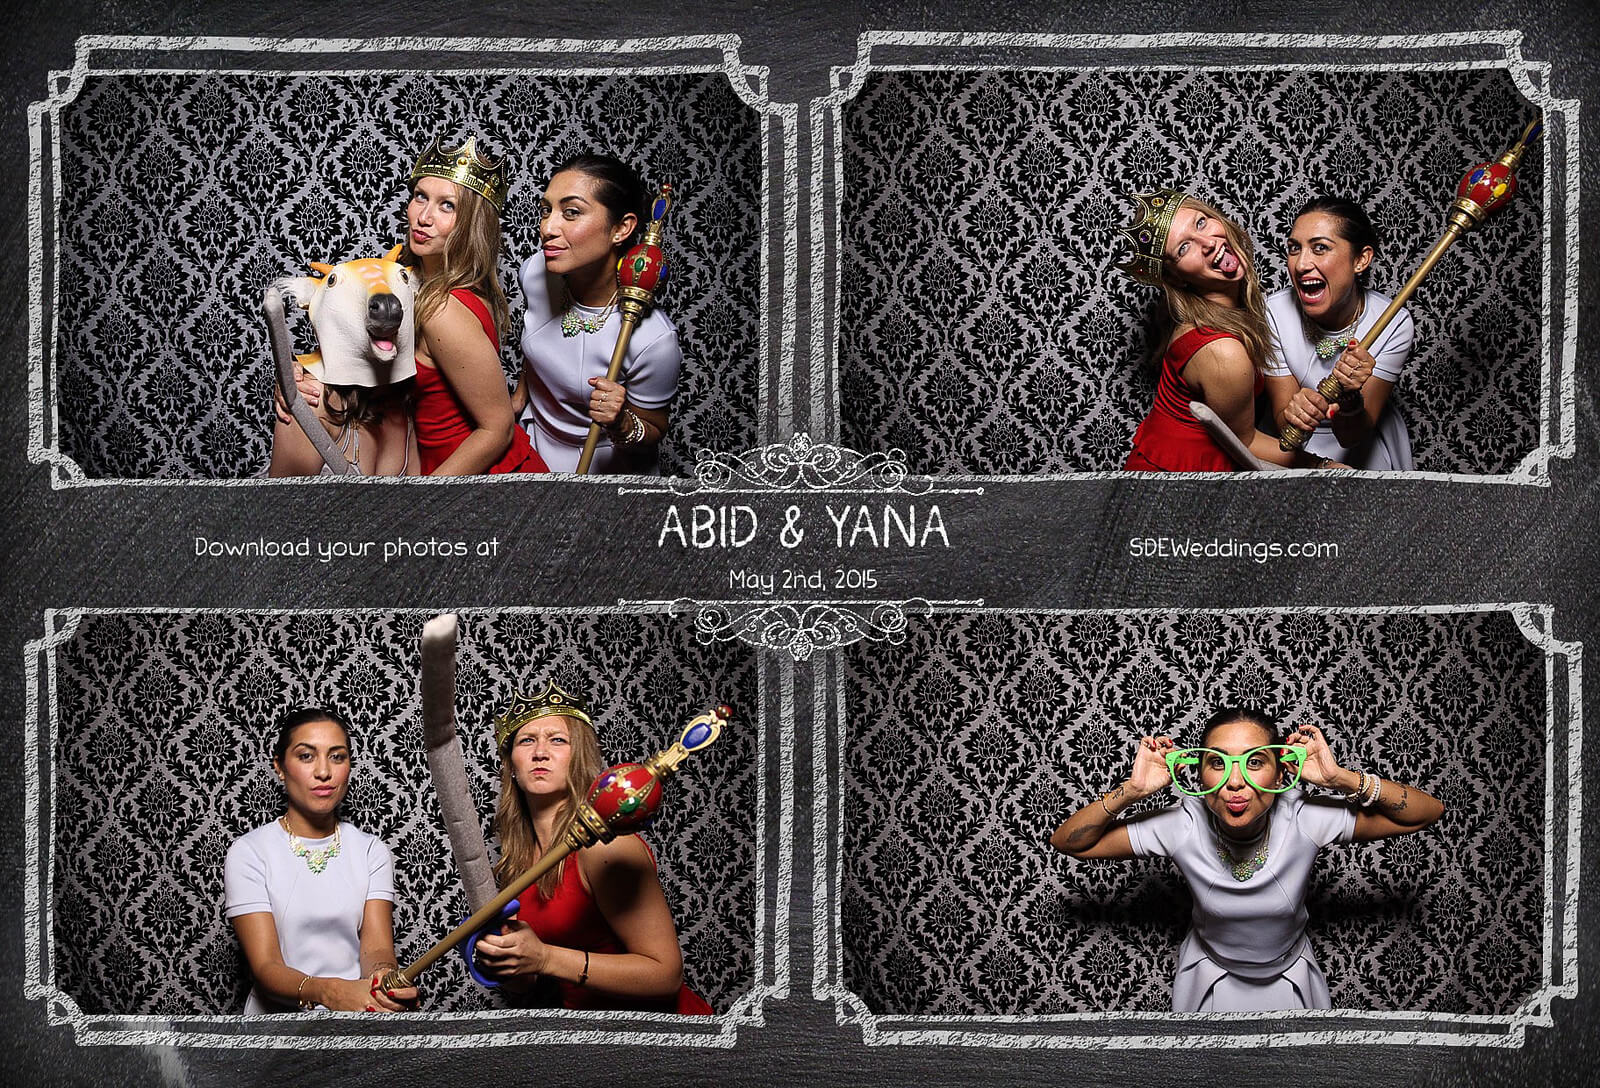 Toronto Graydon Hall Manor Wedding Photo Booth 10